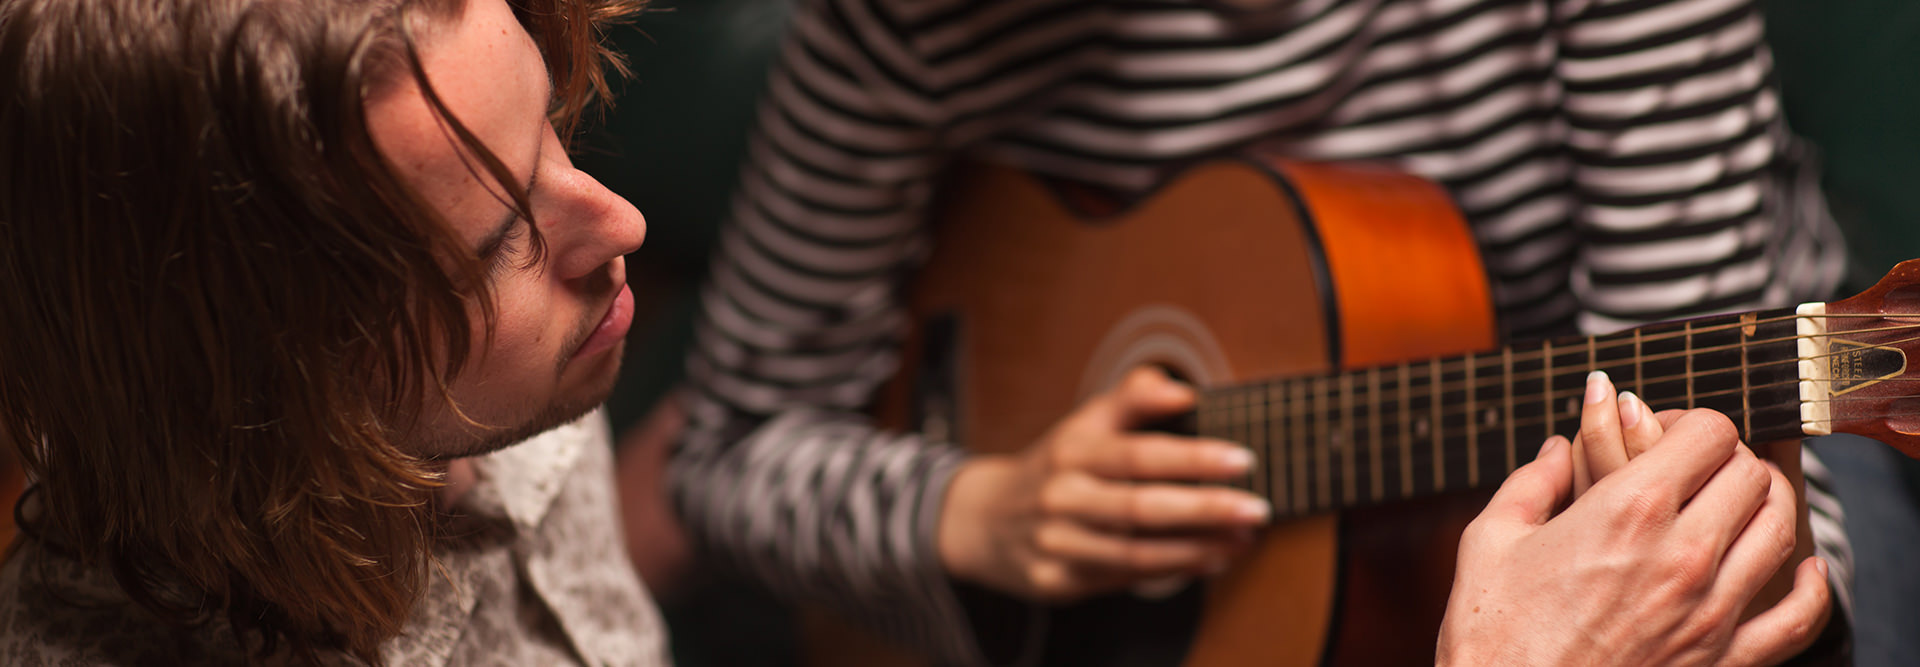 Learn to play music or begin a new hobby